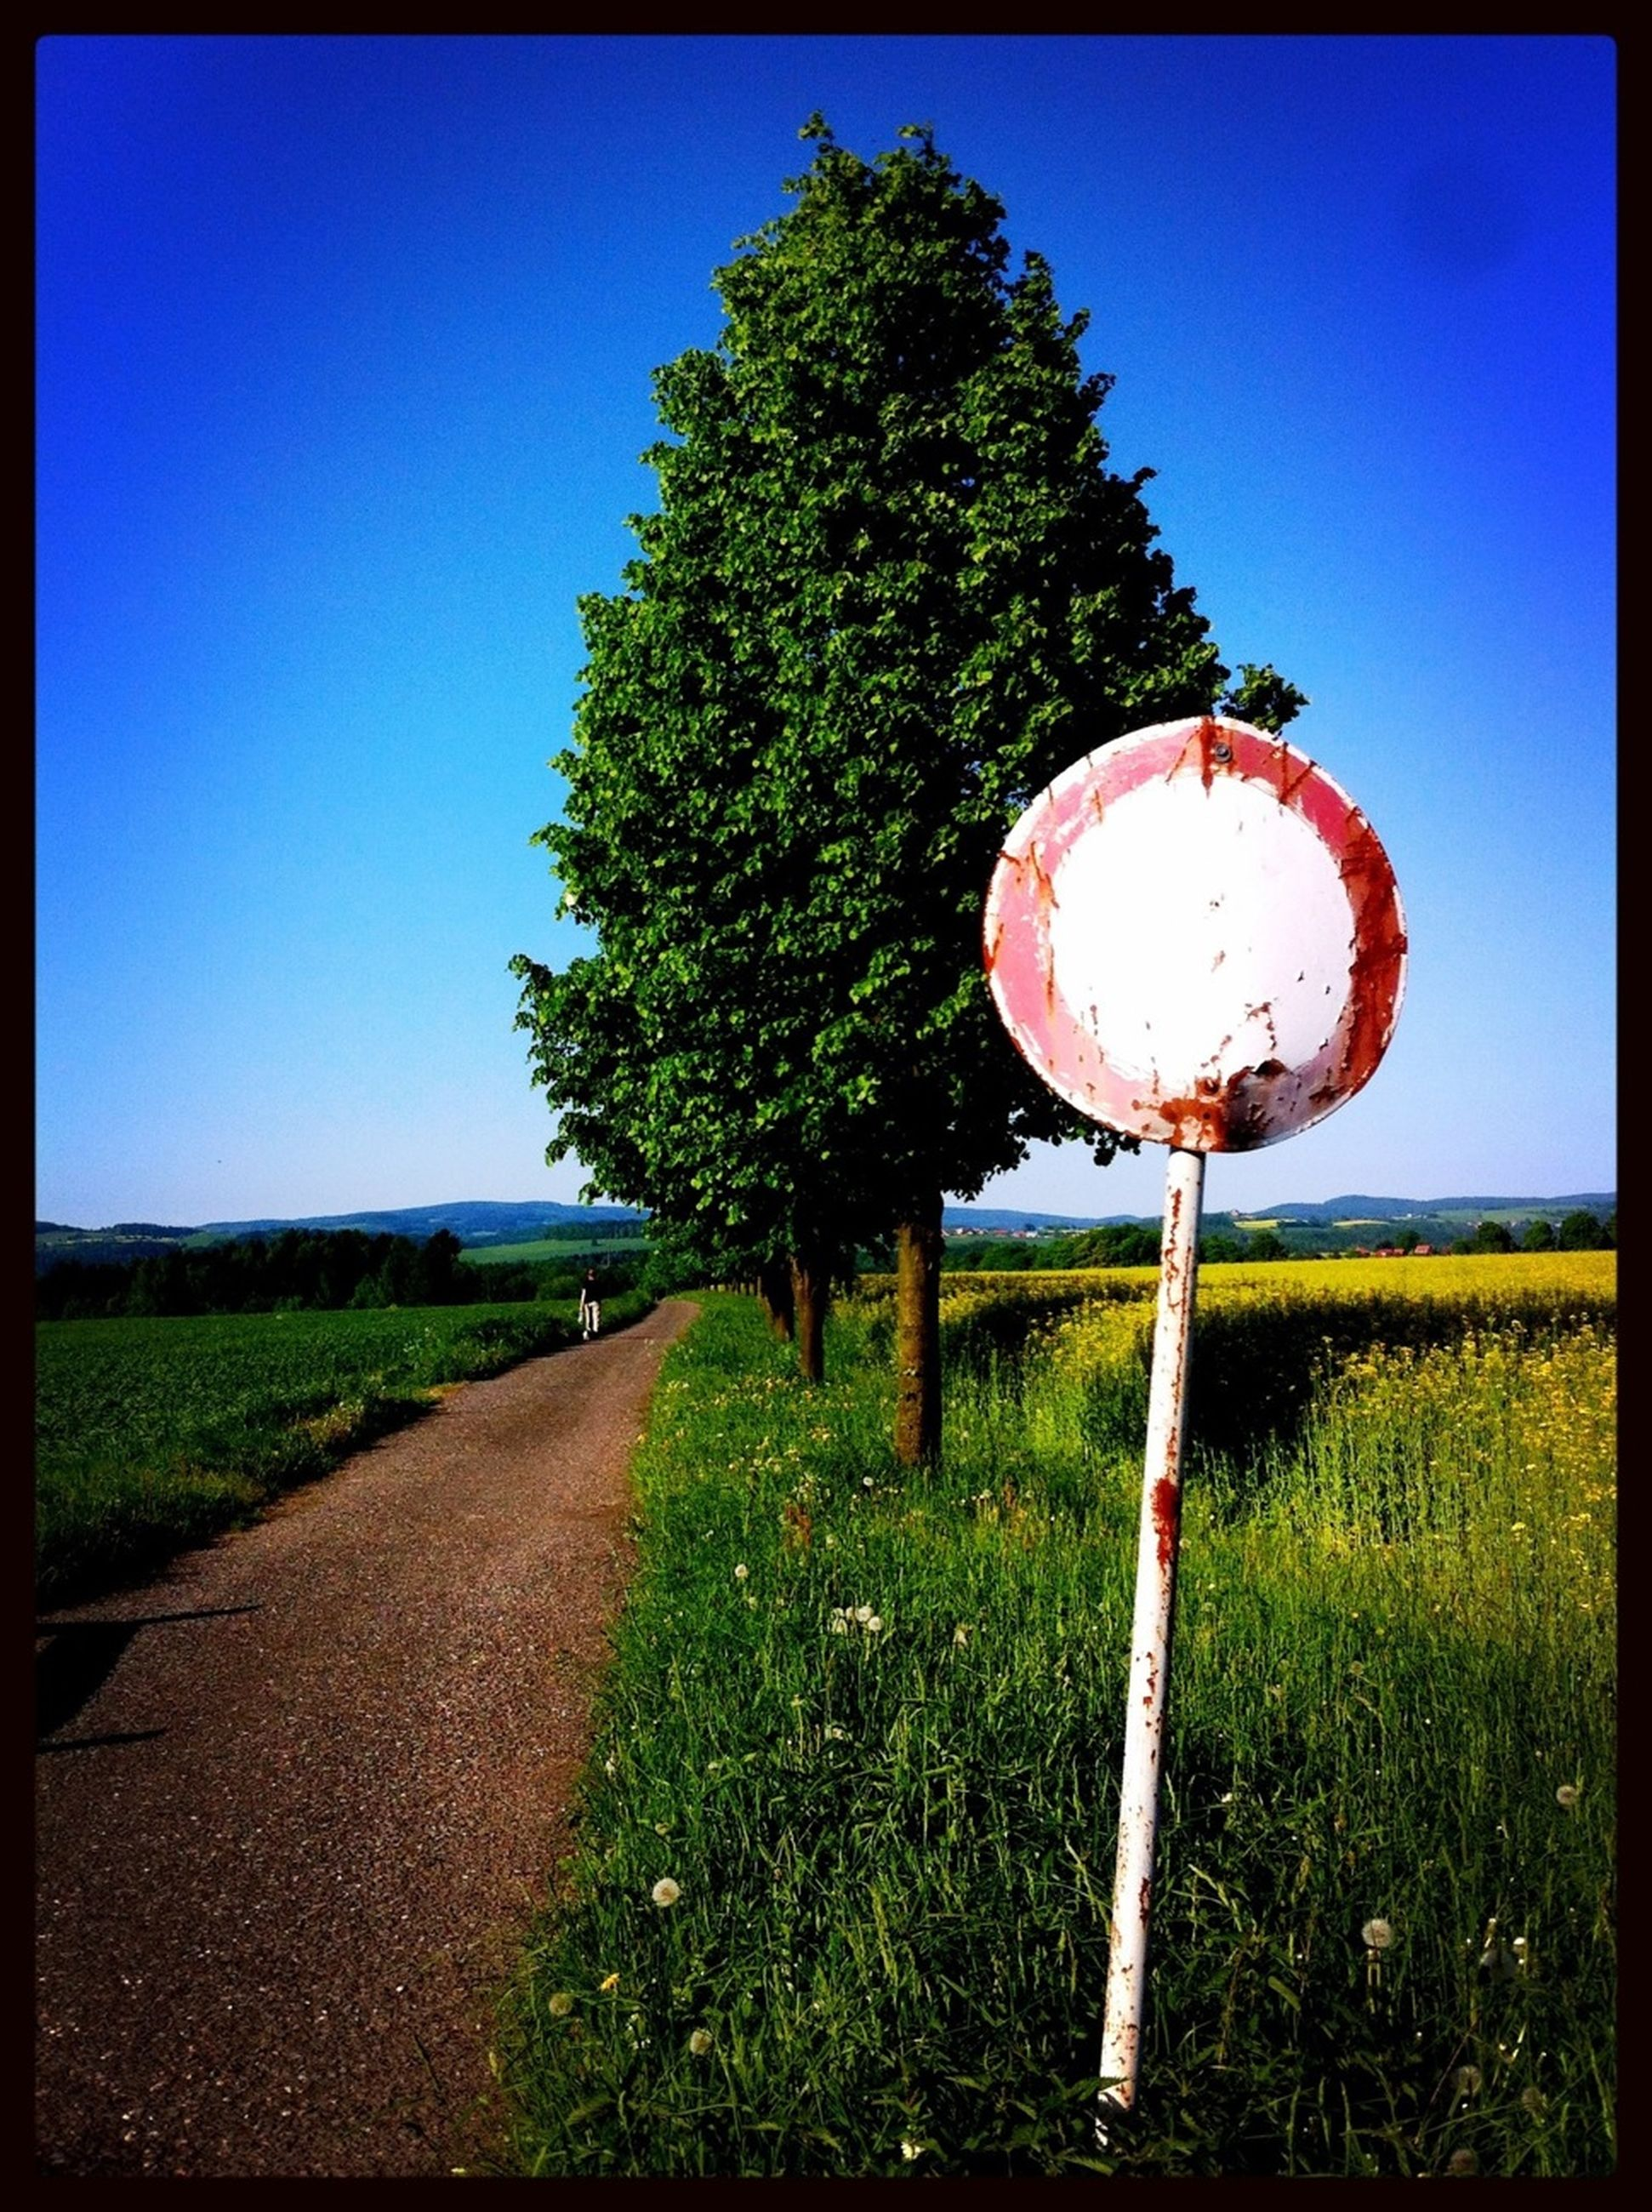 grass, tree, field, landscape, clear sky, road sign, transfer print, tranquility, auto post production filter, road, the way forward, communication, guidance, sign, tranquil scene, blue, rural scene, sky, grassy, nature